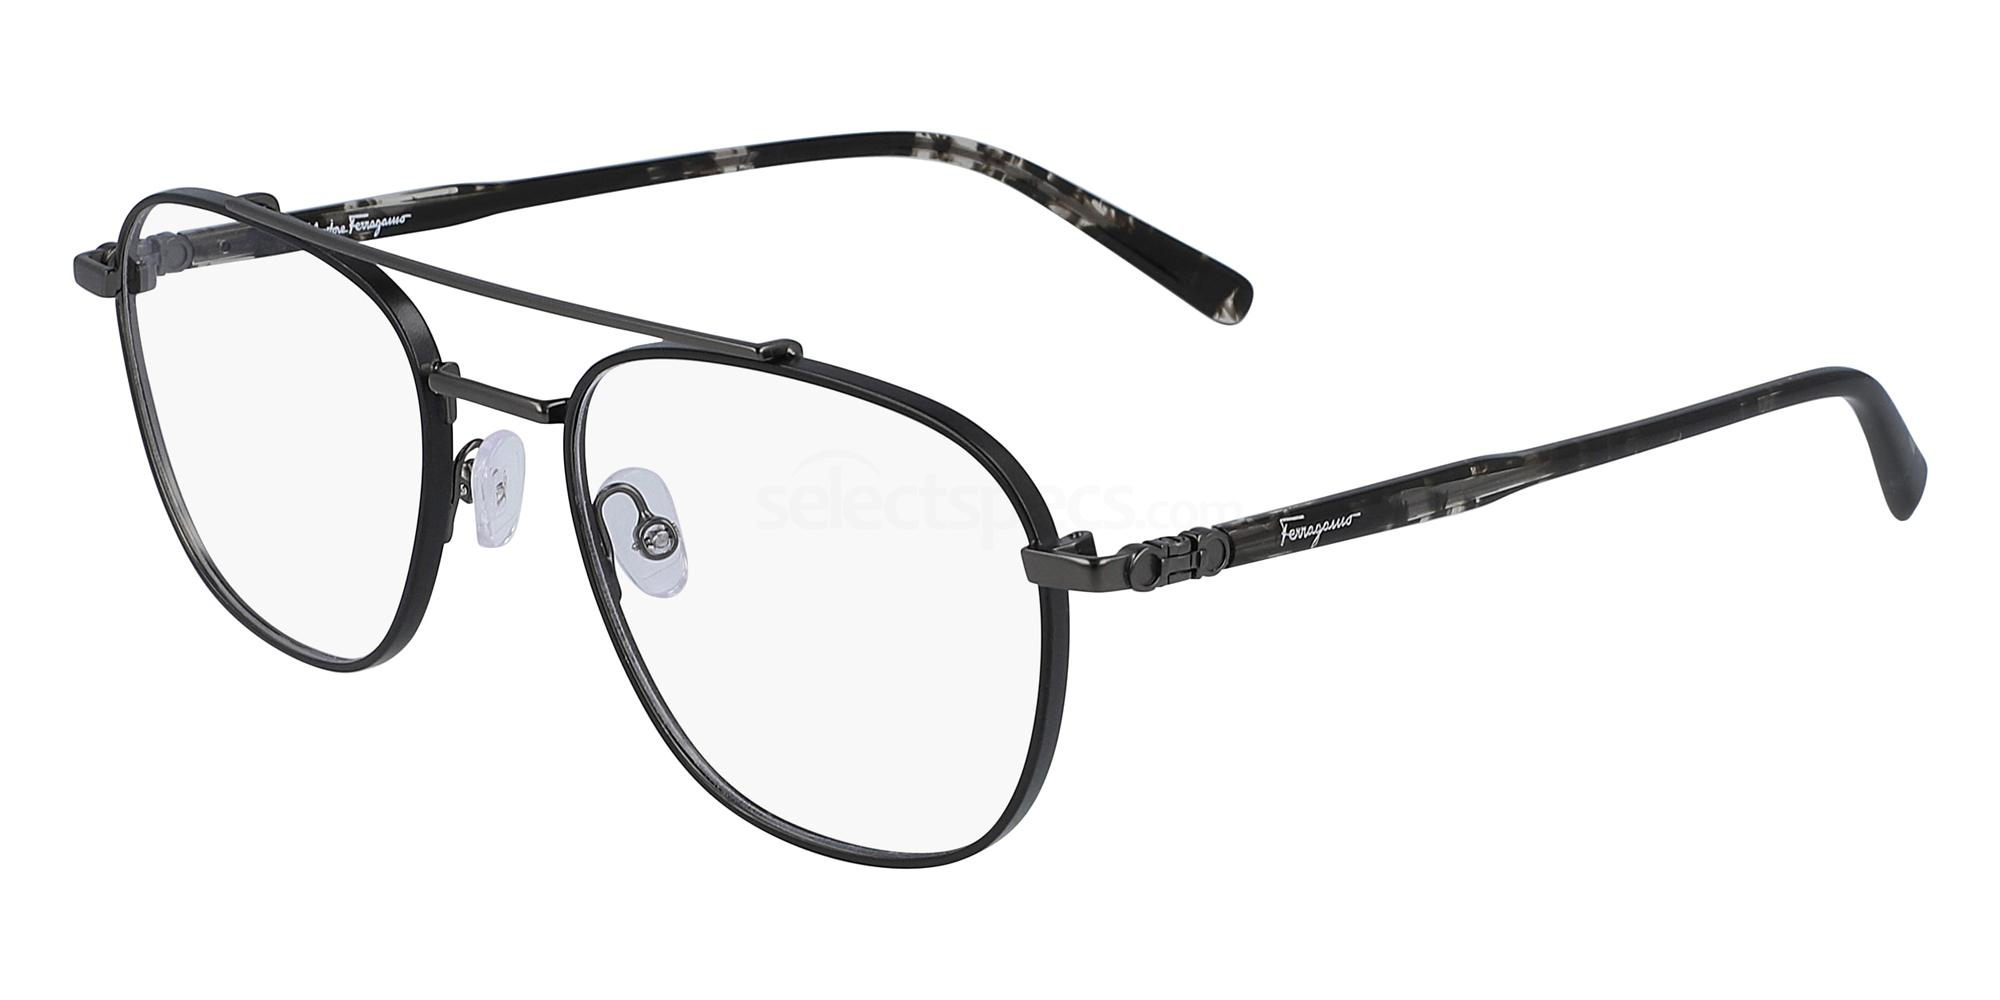 032 SF2183 Glasses, Salvatore Ferragamo